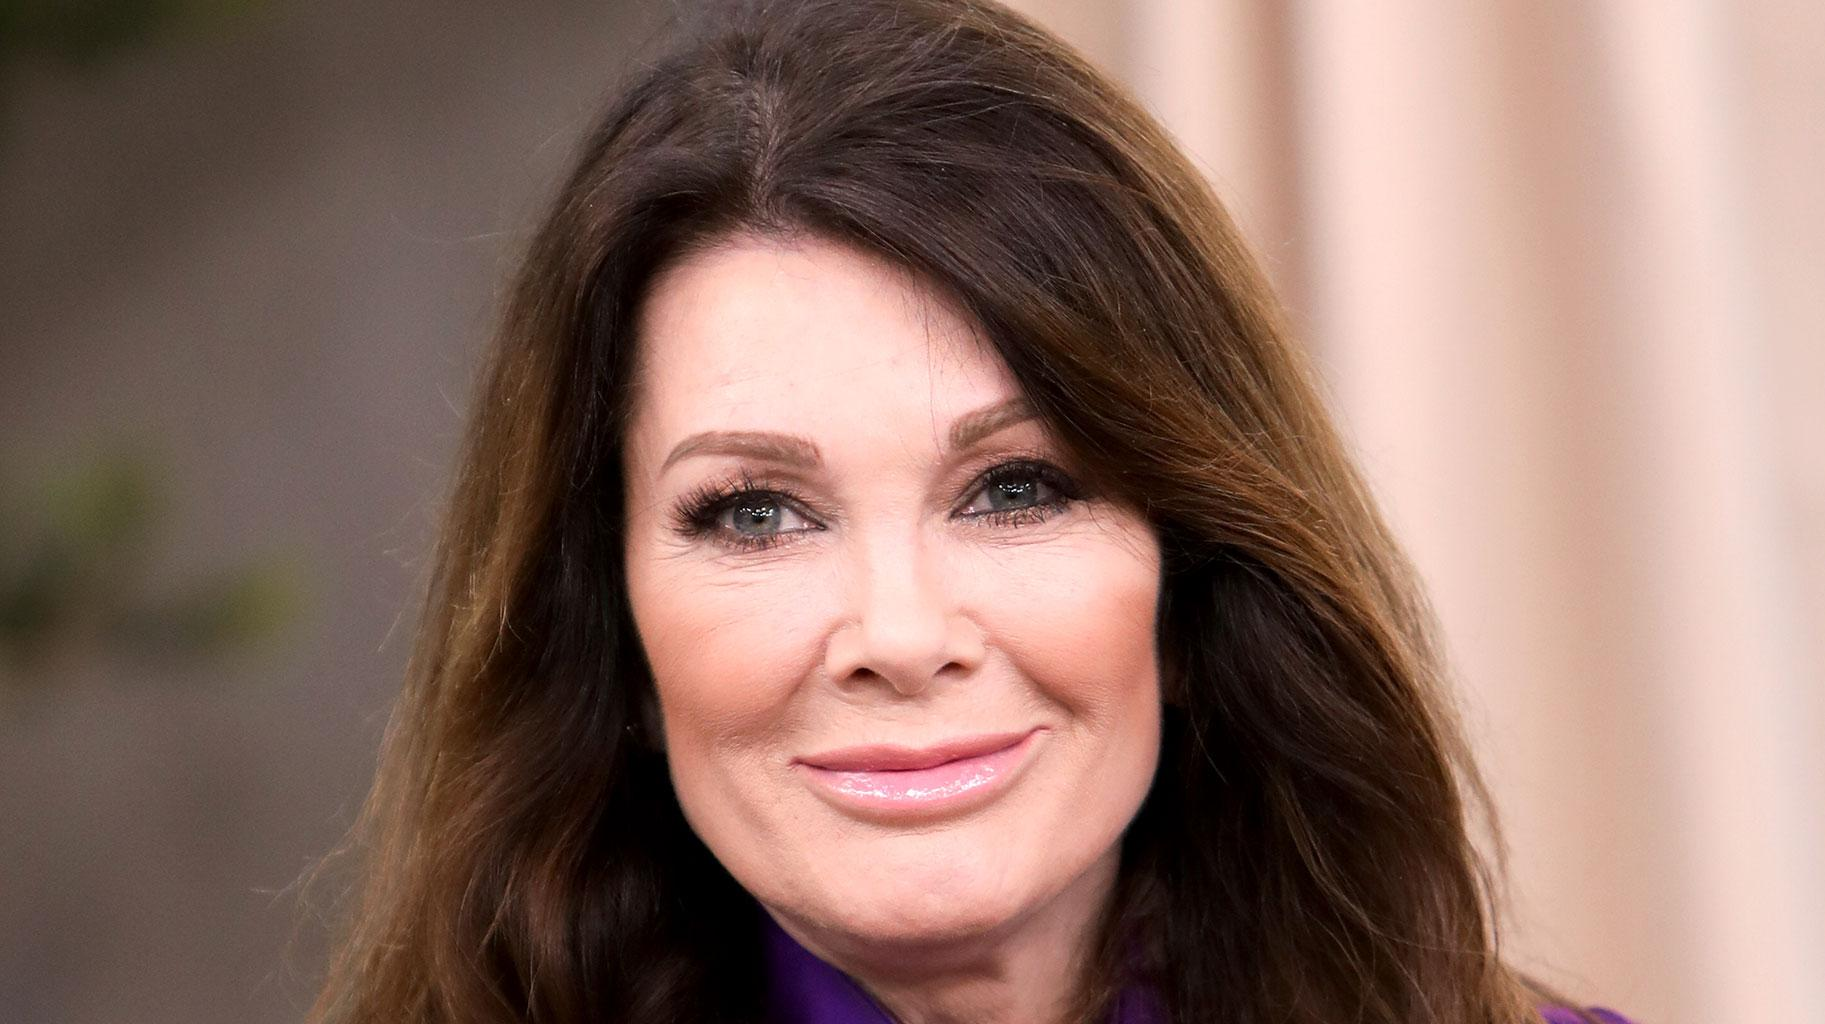 Lisa Vanderpump Reportedly 'Misses' RHOBH - But Does She Also Miss Her Former Co-Stars?